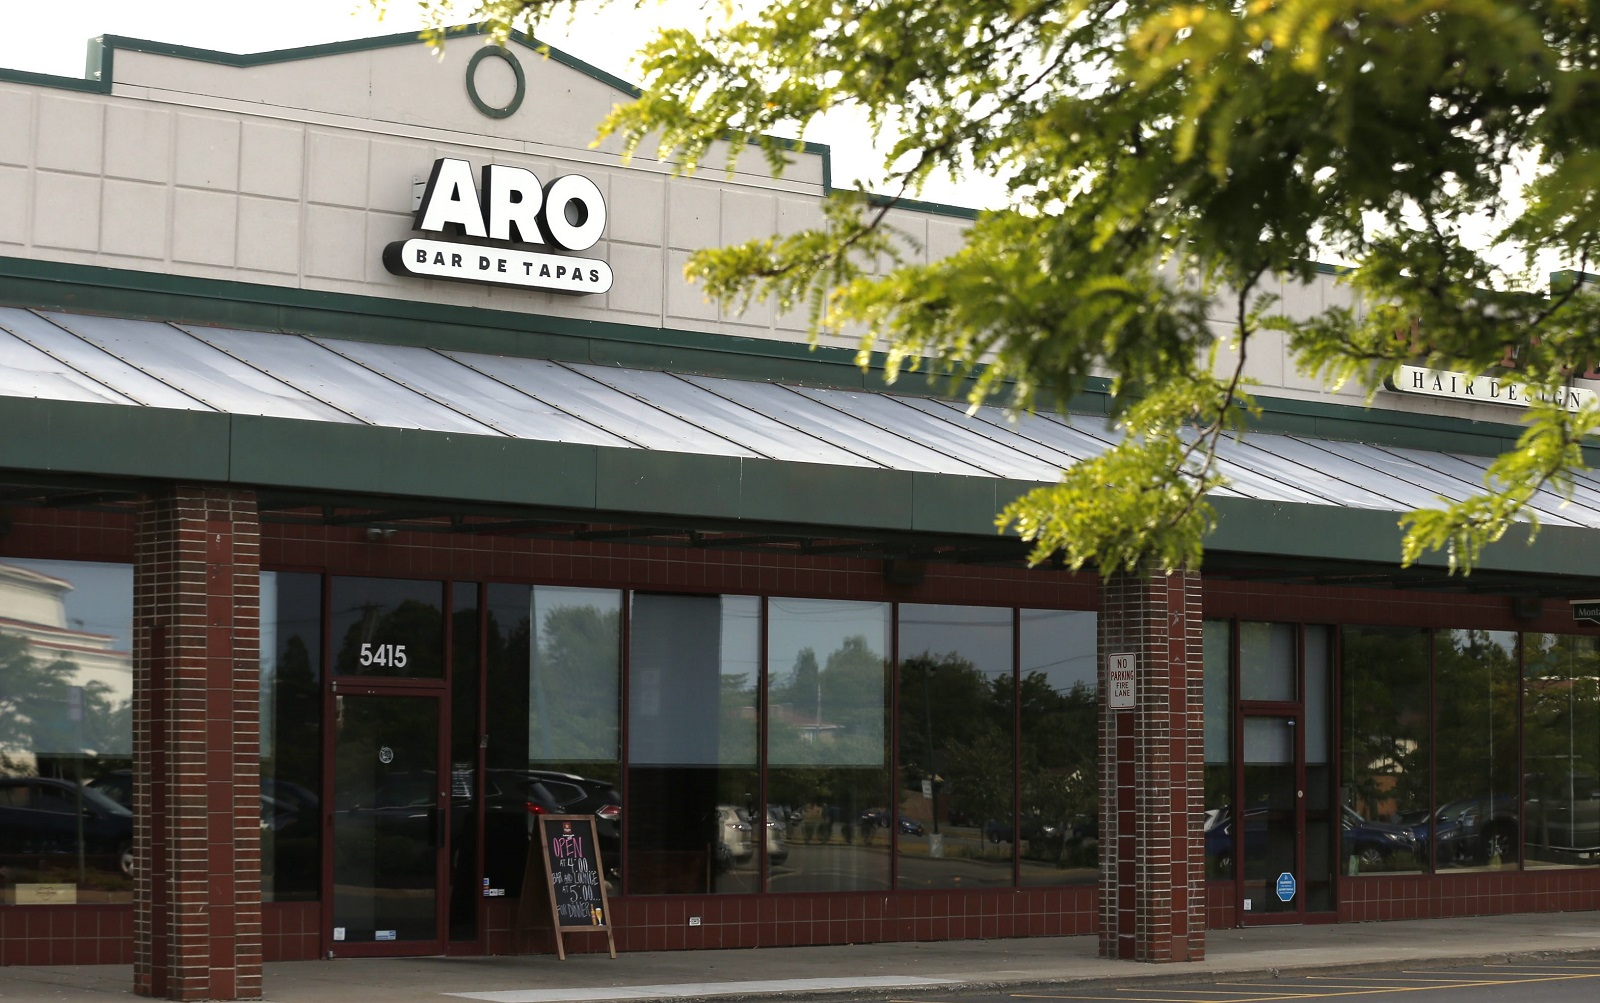 Aro Bar De Tapas on Sheridan Drive in Amherst. (Robert Kirkham/Buffalo News)